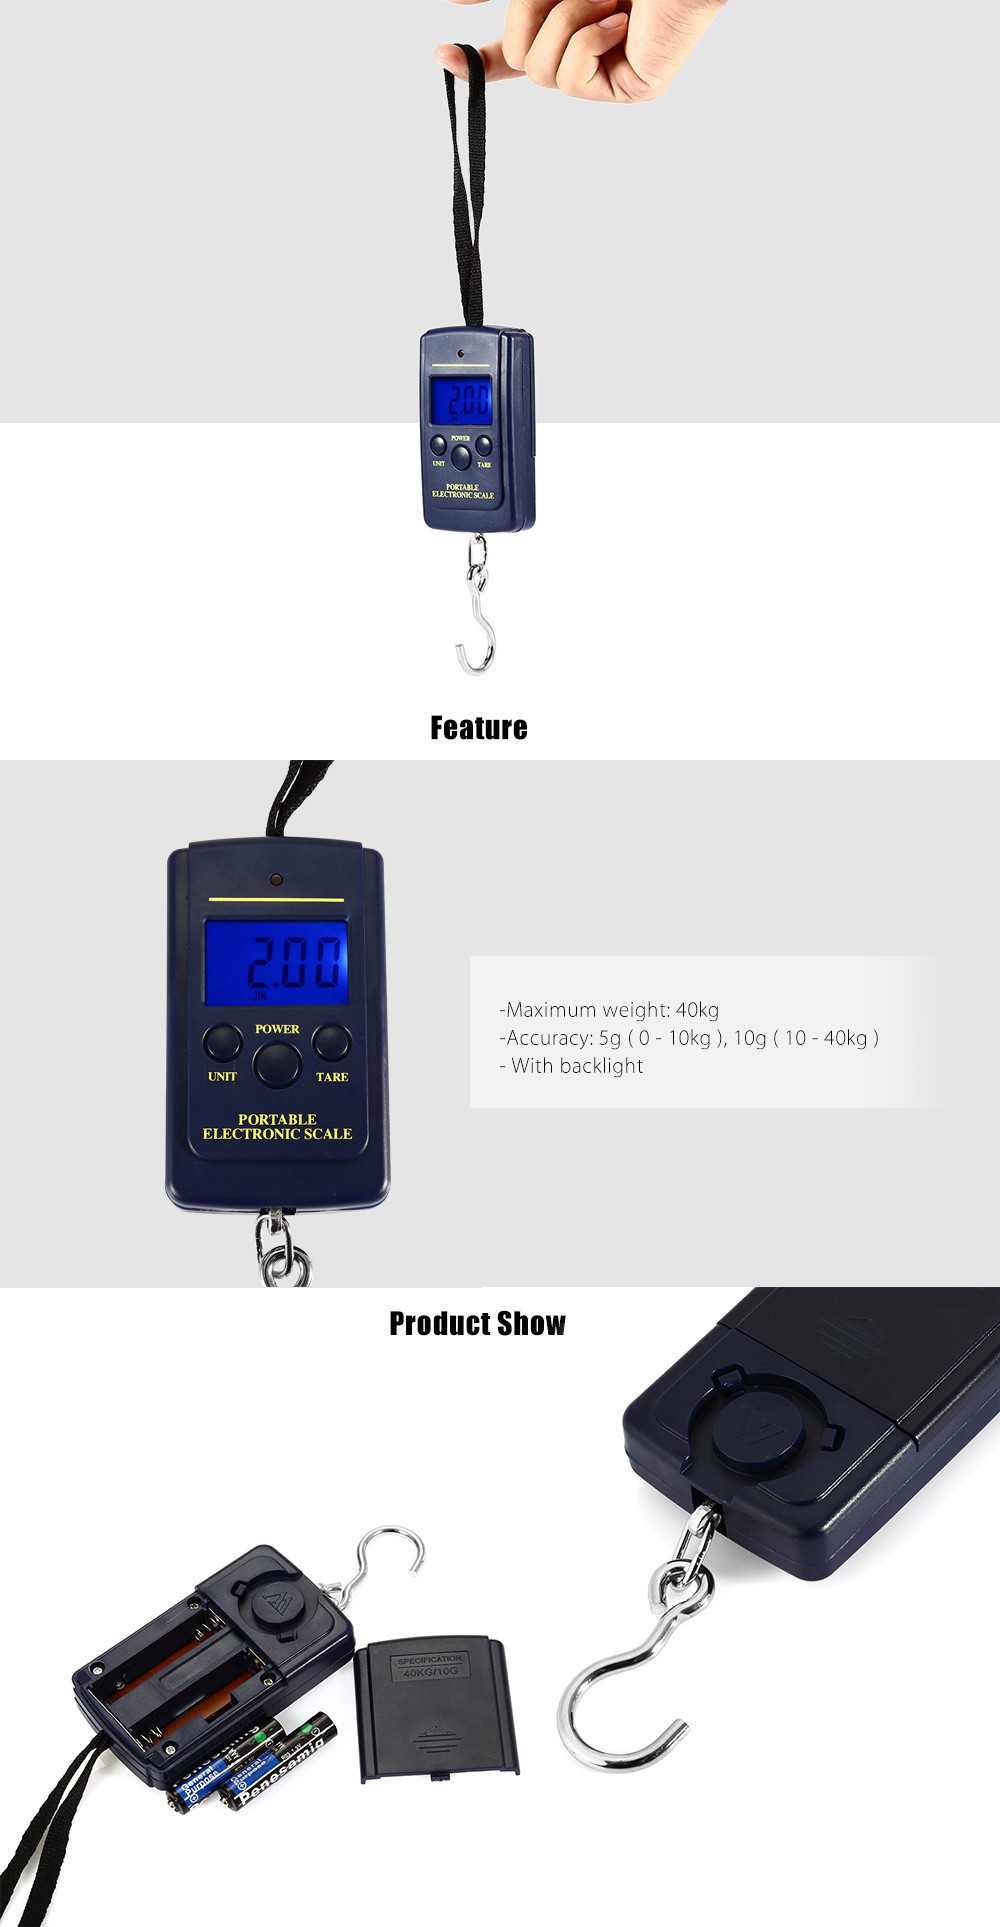 MH - 01 Portable High Accuracy Electronic Scale